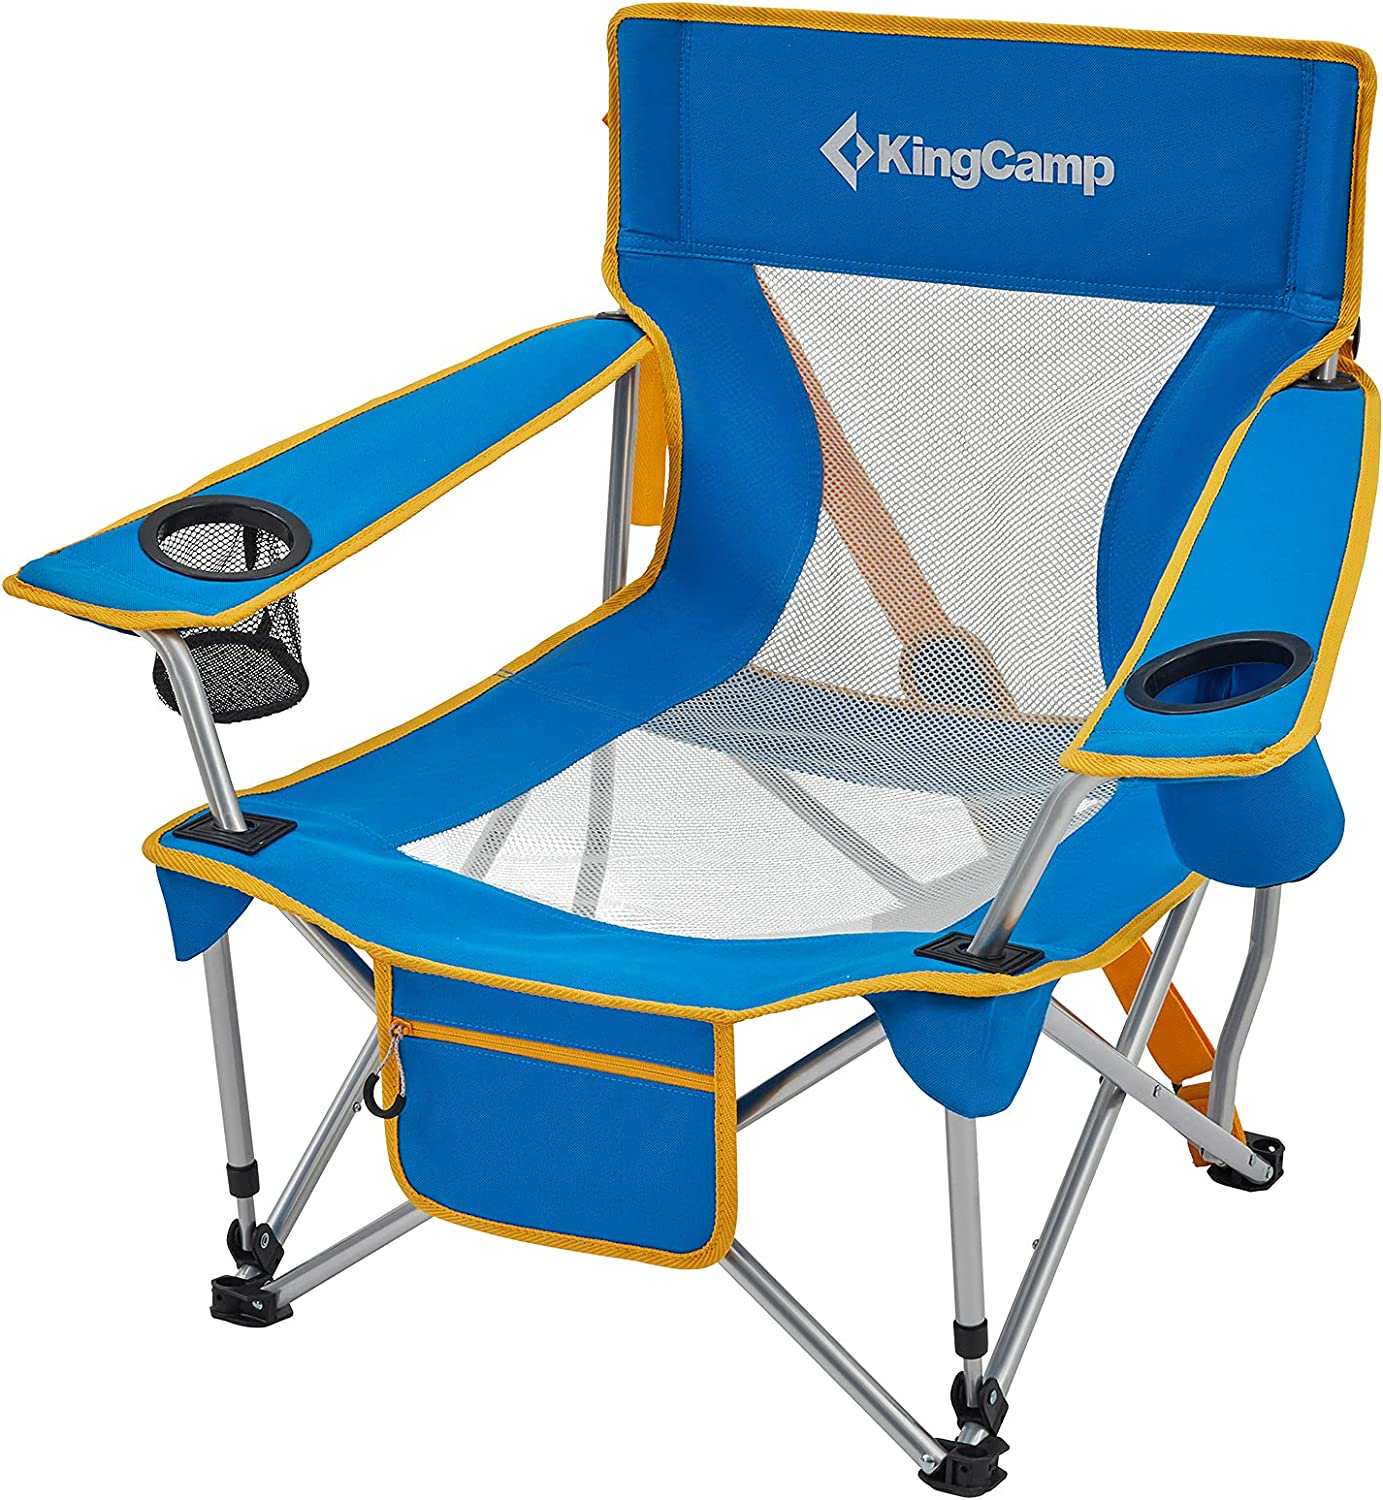 KingCamp Folding Camping Chair Low Seat Portable Light Weight Chair with Cup Holder & Front Pocket for Outdoor, Garden, Fishing, Beach, Travel, Picnic, Hiking